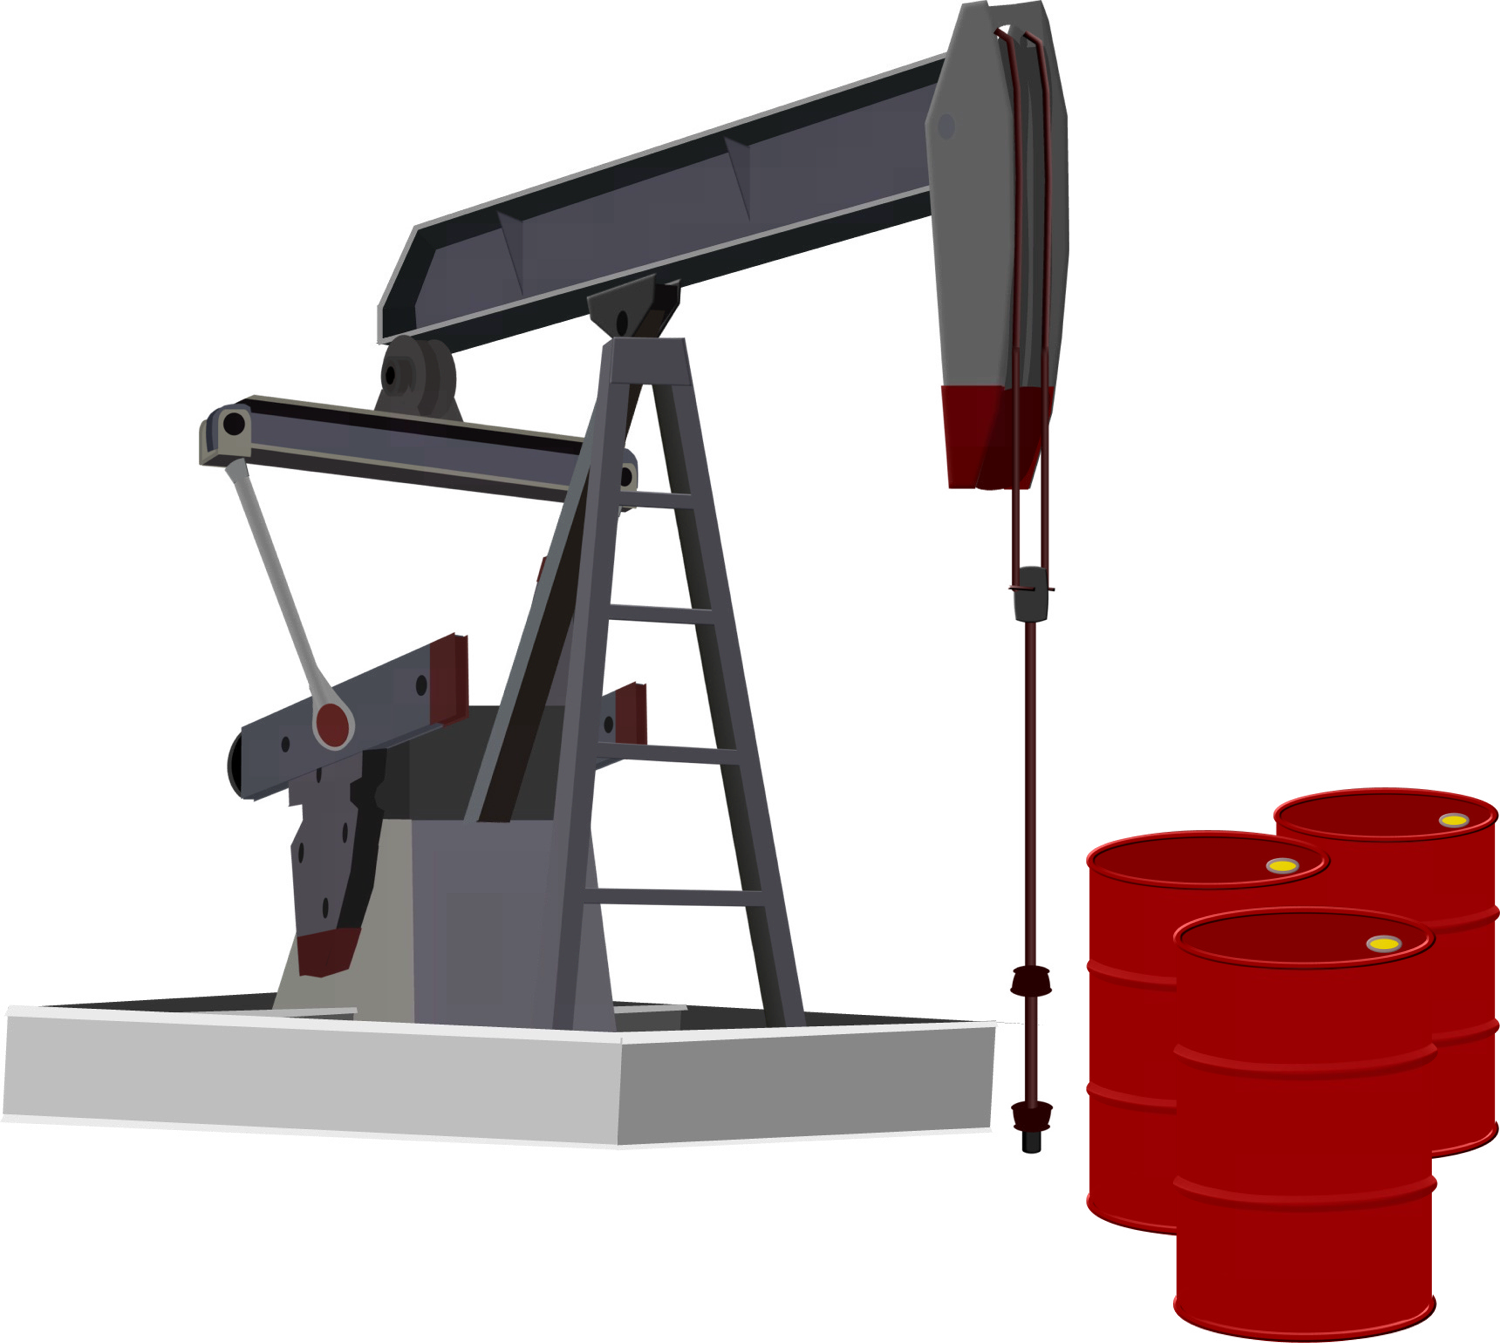 Oil | Free Images at Clker.com - vector clip art online, royalty free ...